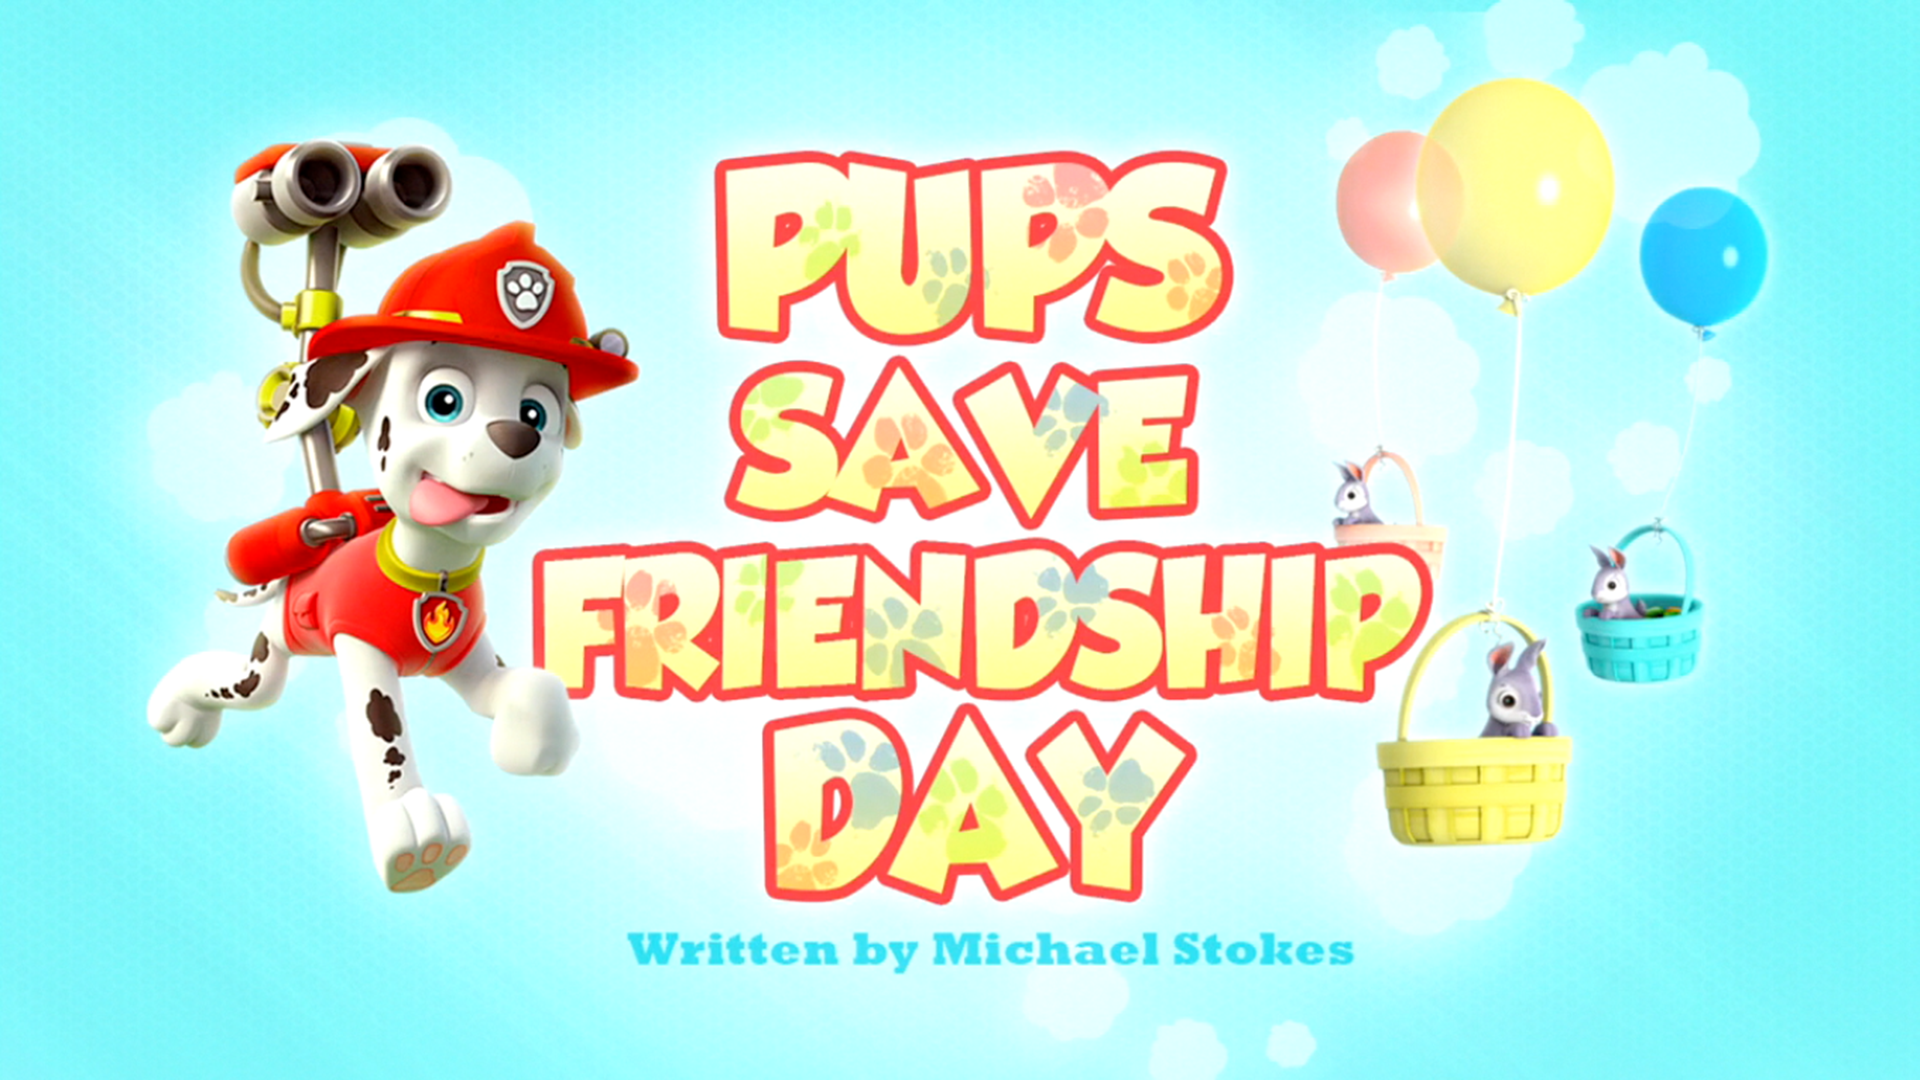 Pups save friendship day paw patrol wiki fandom powered by wikia pups save friendship day altavistaventures Images